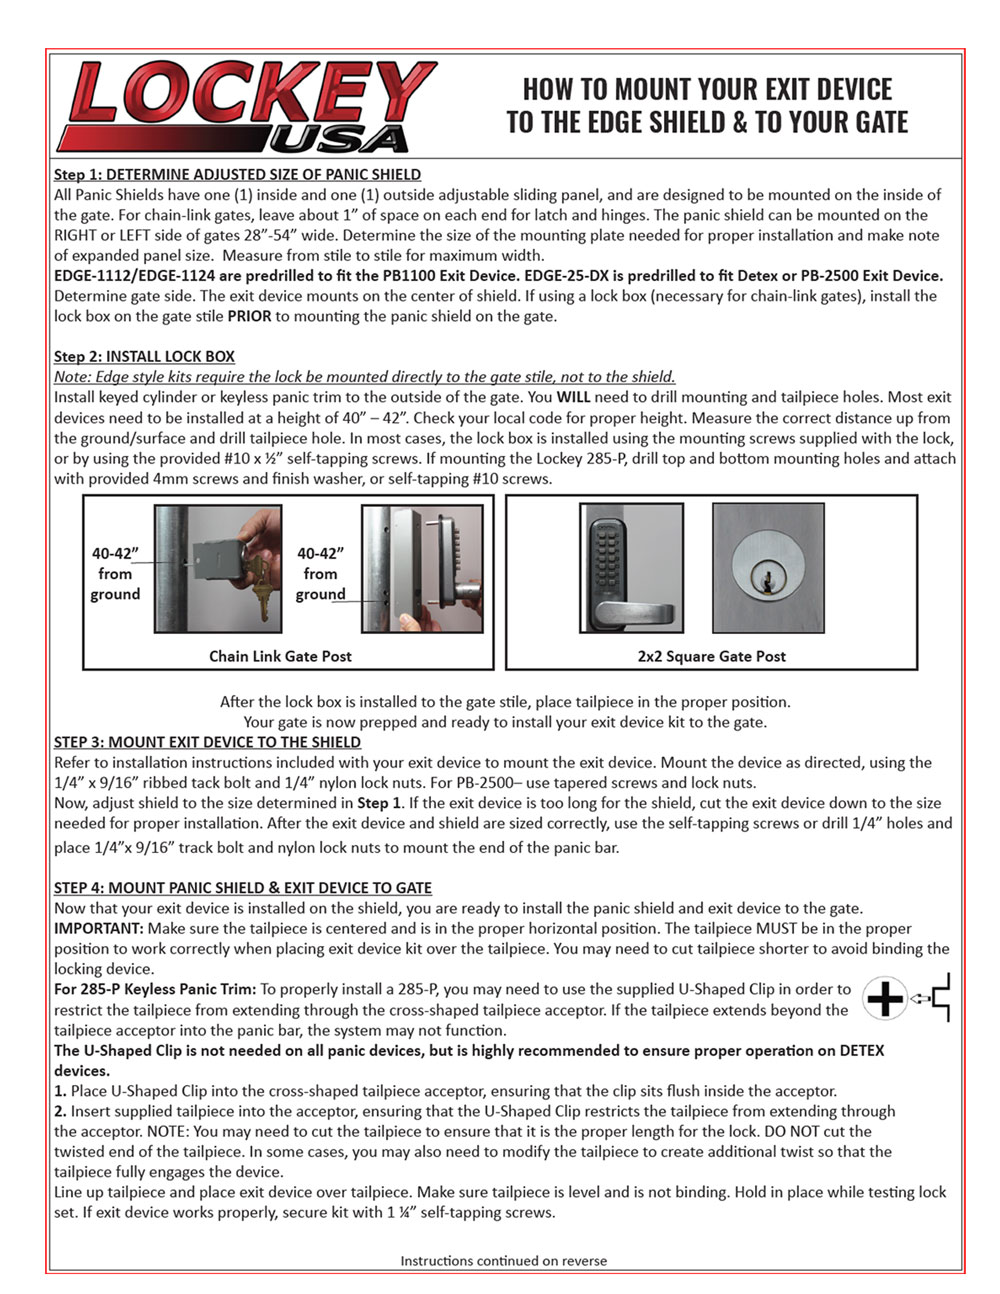 Installation Instructions - Lockey Panic Shield Kits: EDGE/SECURITY (ED60 to ED65)